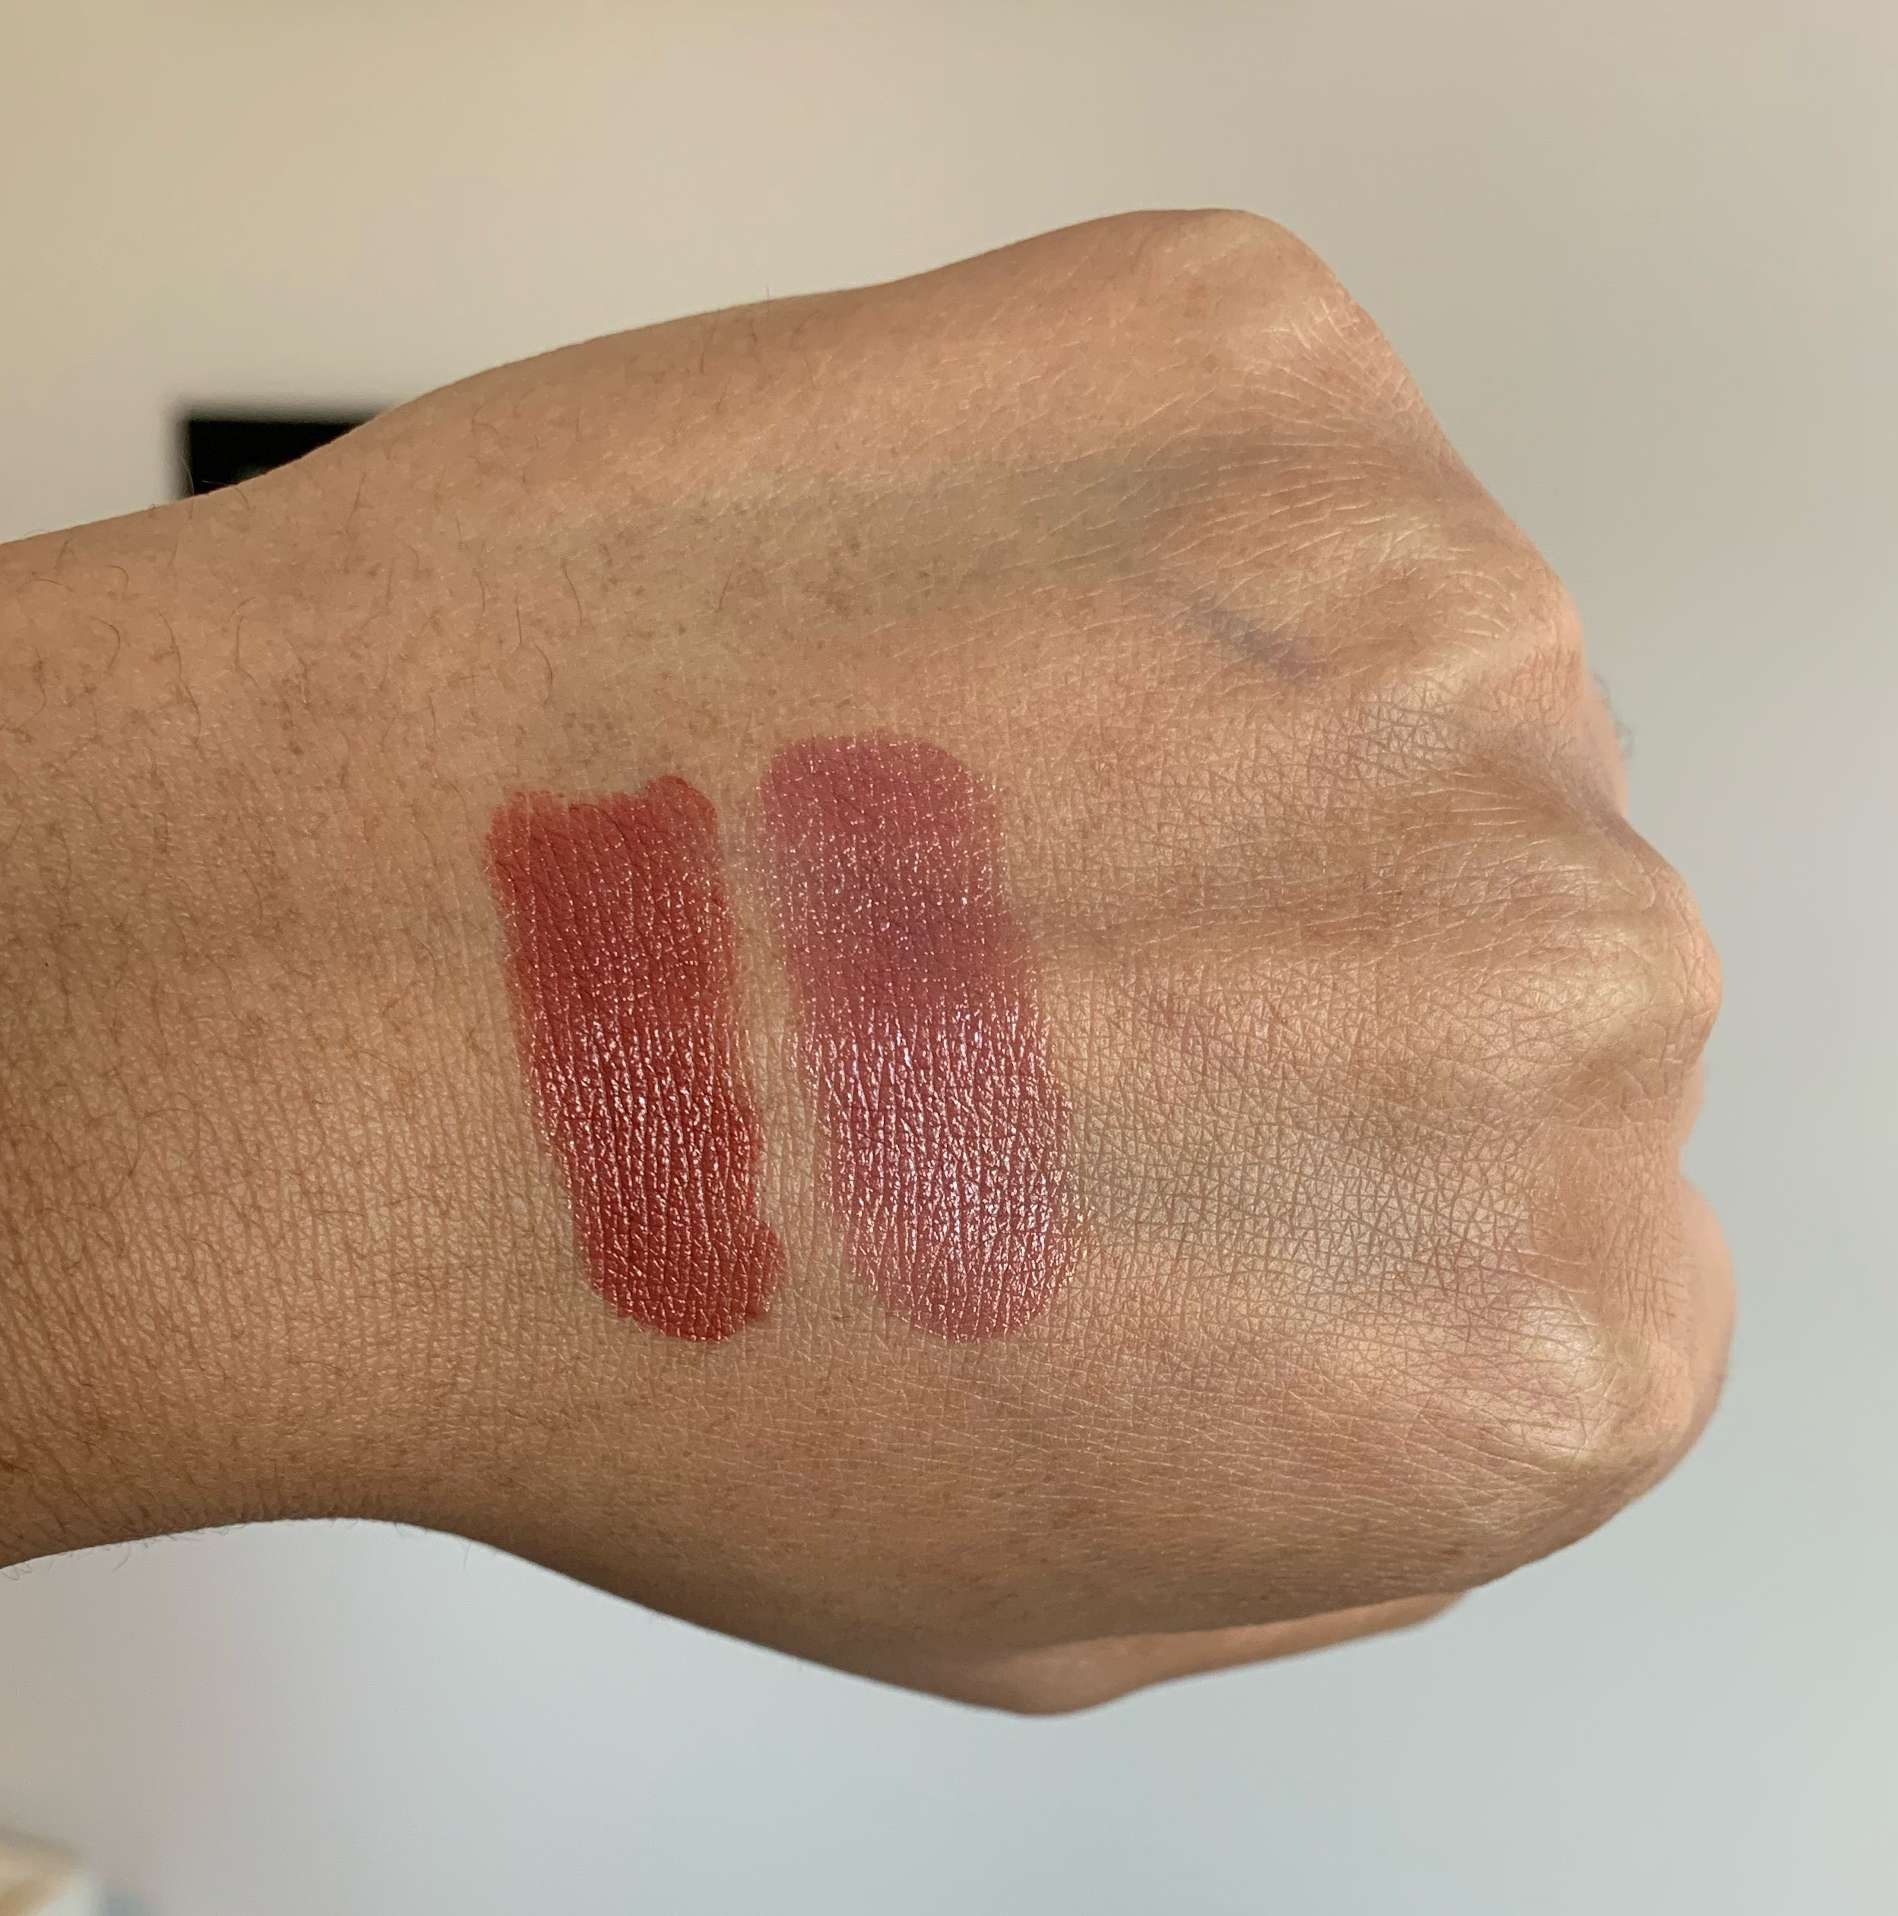 Chanel Rouge Coco Ultra Hydrating Lipstick 406 Antoinette and 436 Maggy Swatches on Medium Dark Skin